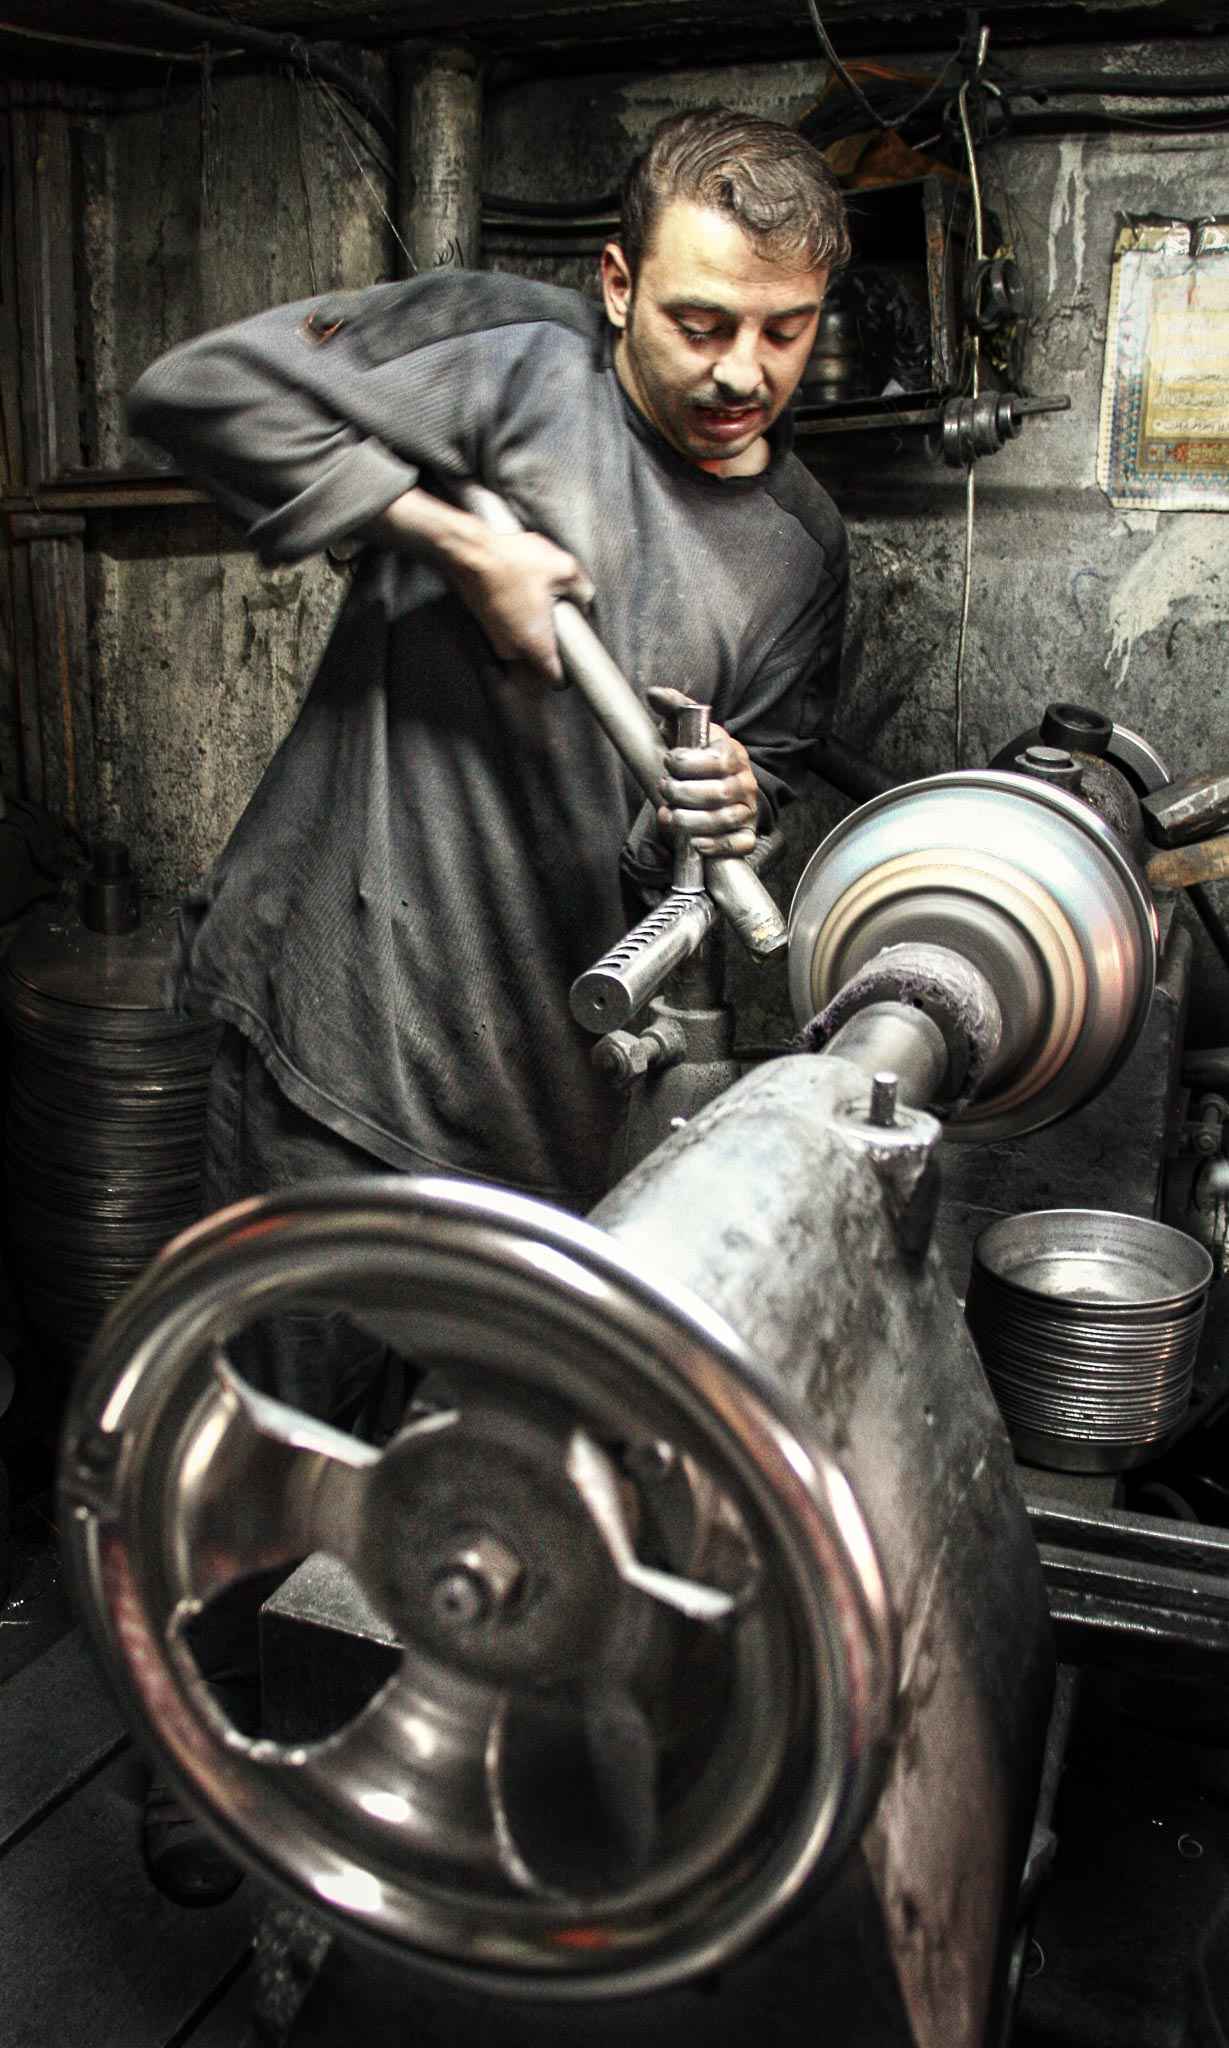 The Pot Maker (Damascus)